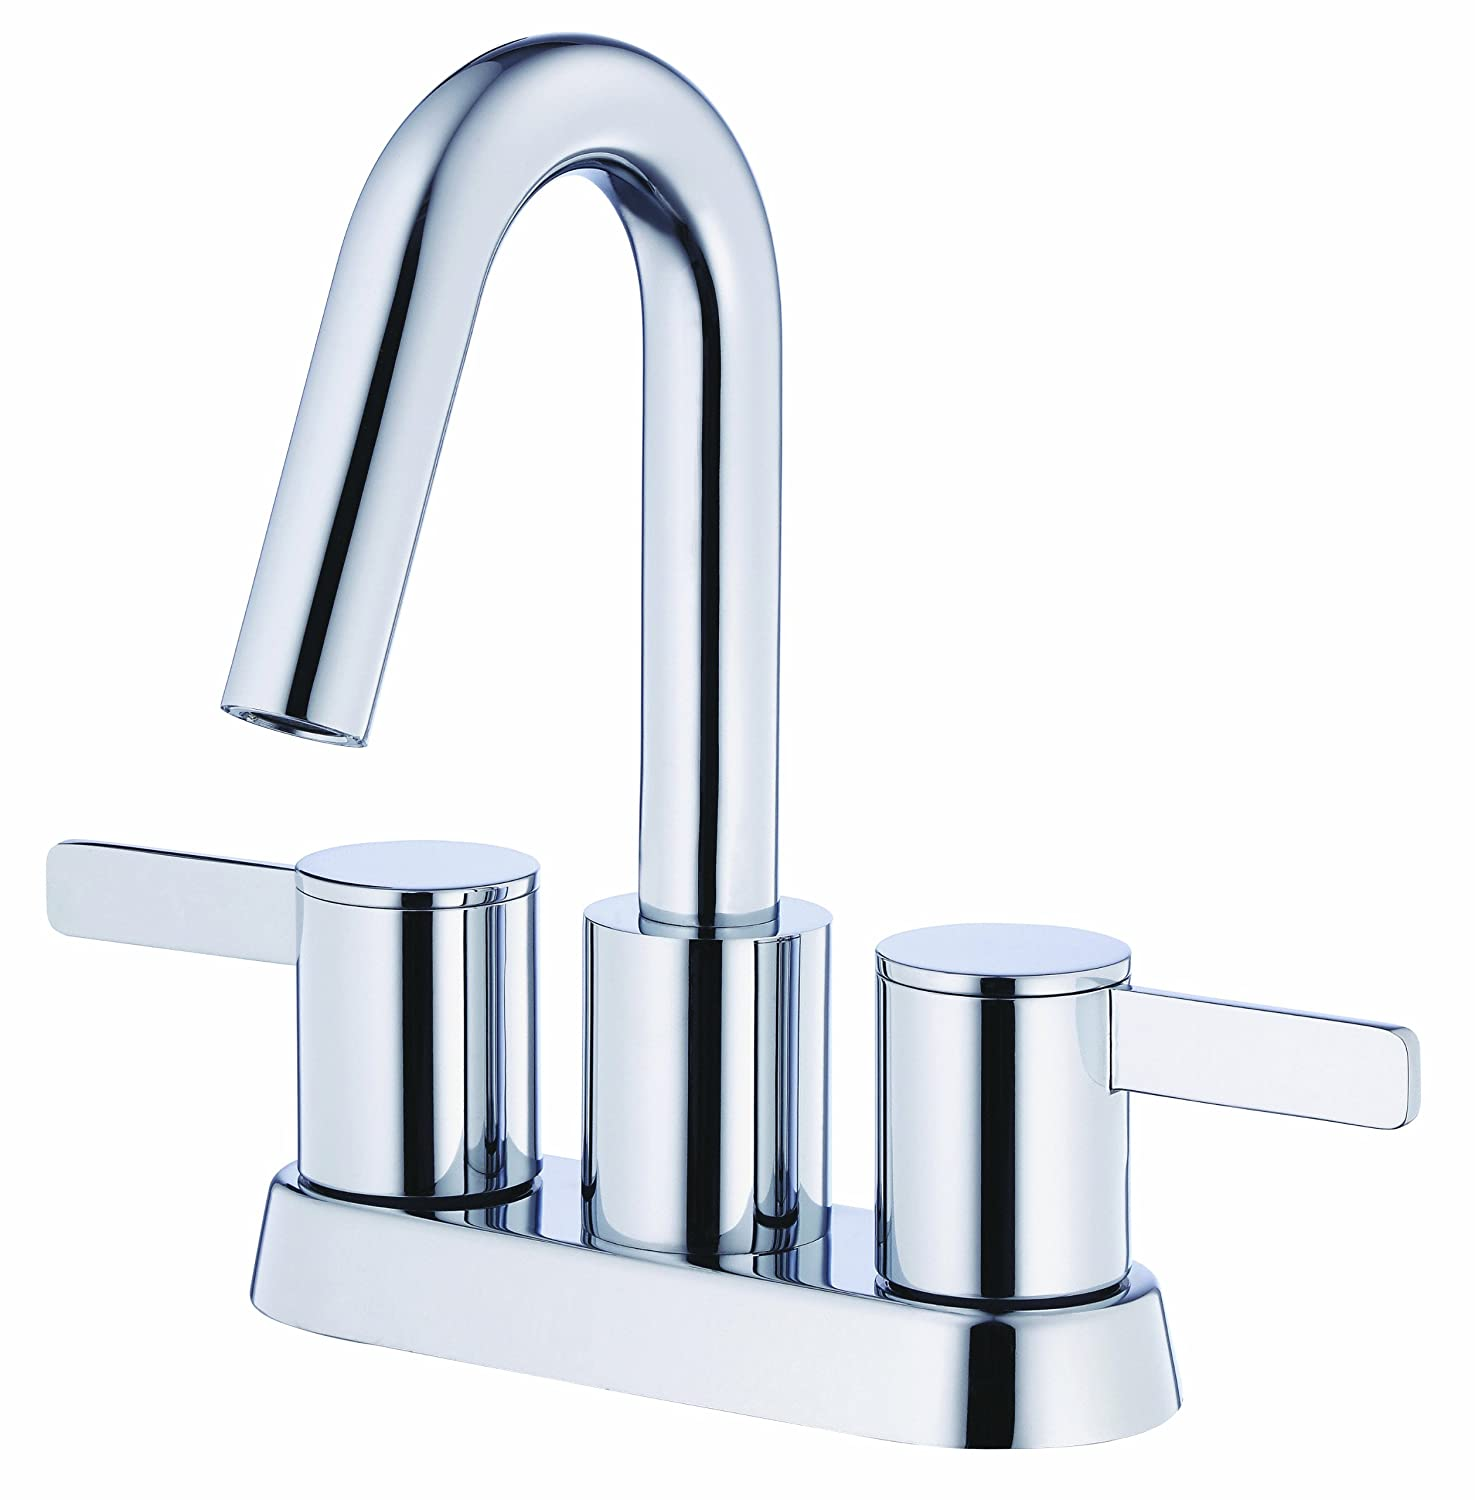 Danze D301030 Amalfi Two Handle Centerset Lavatory Faucet, Chrome ...